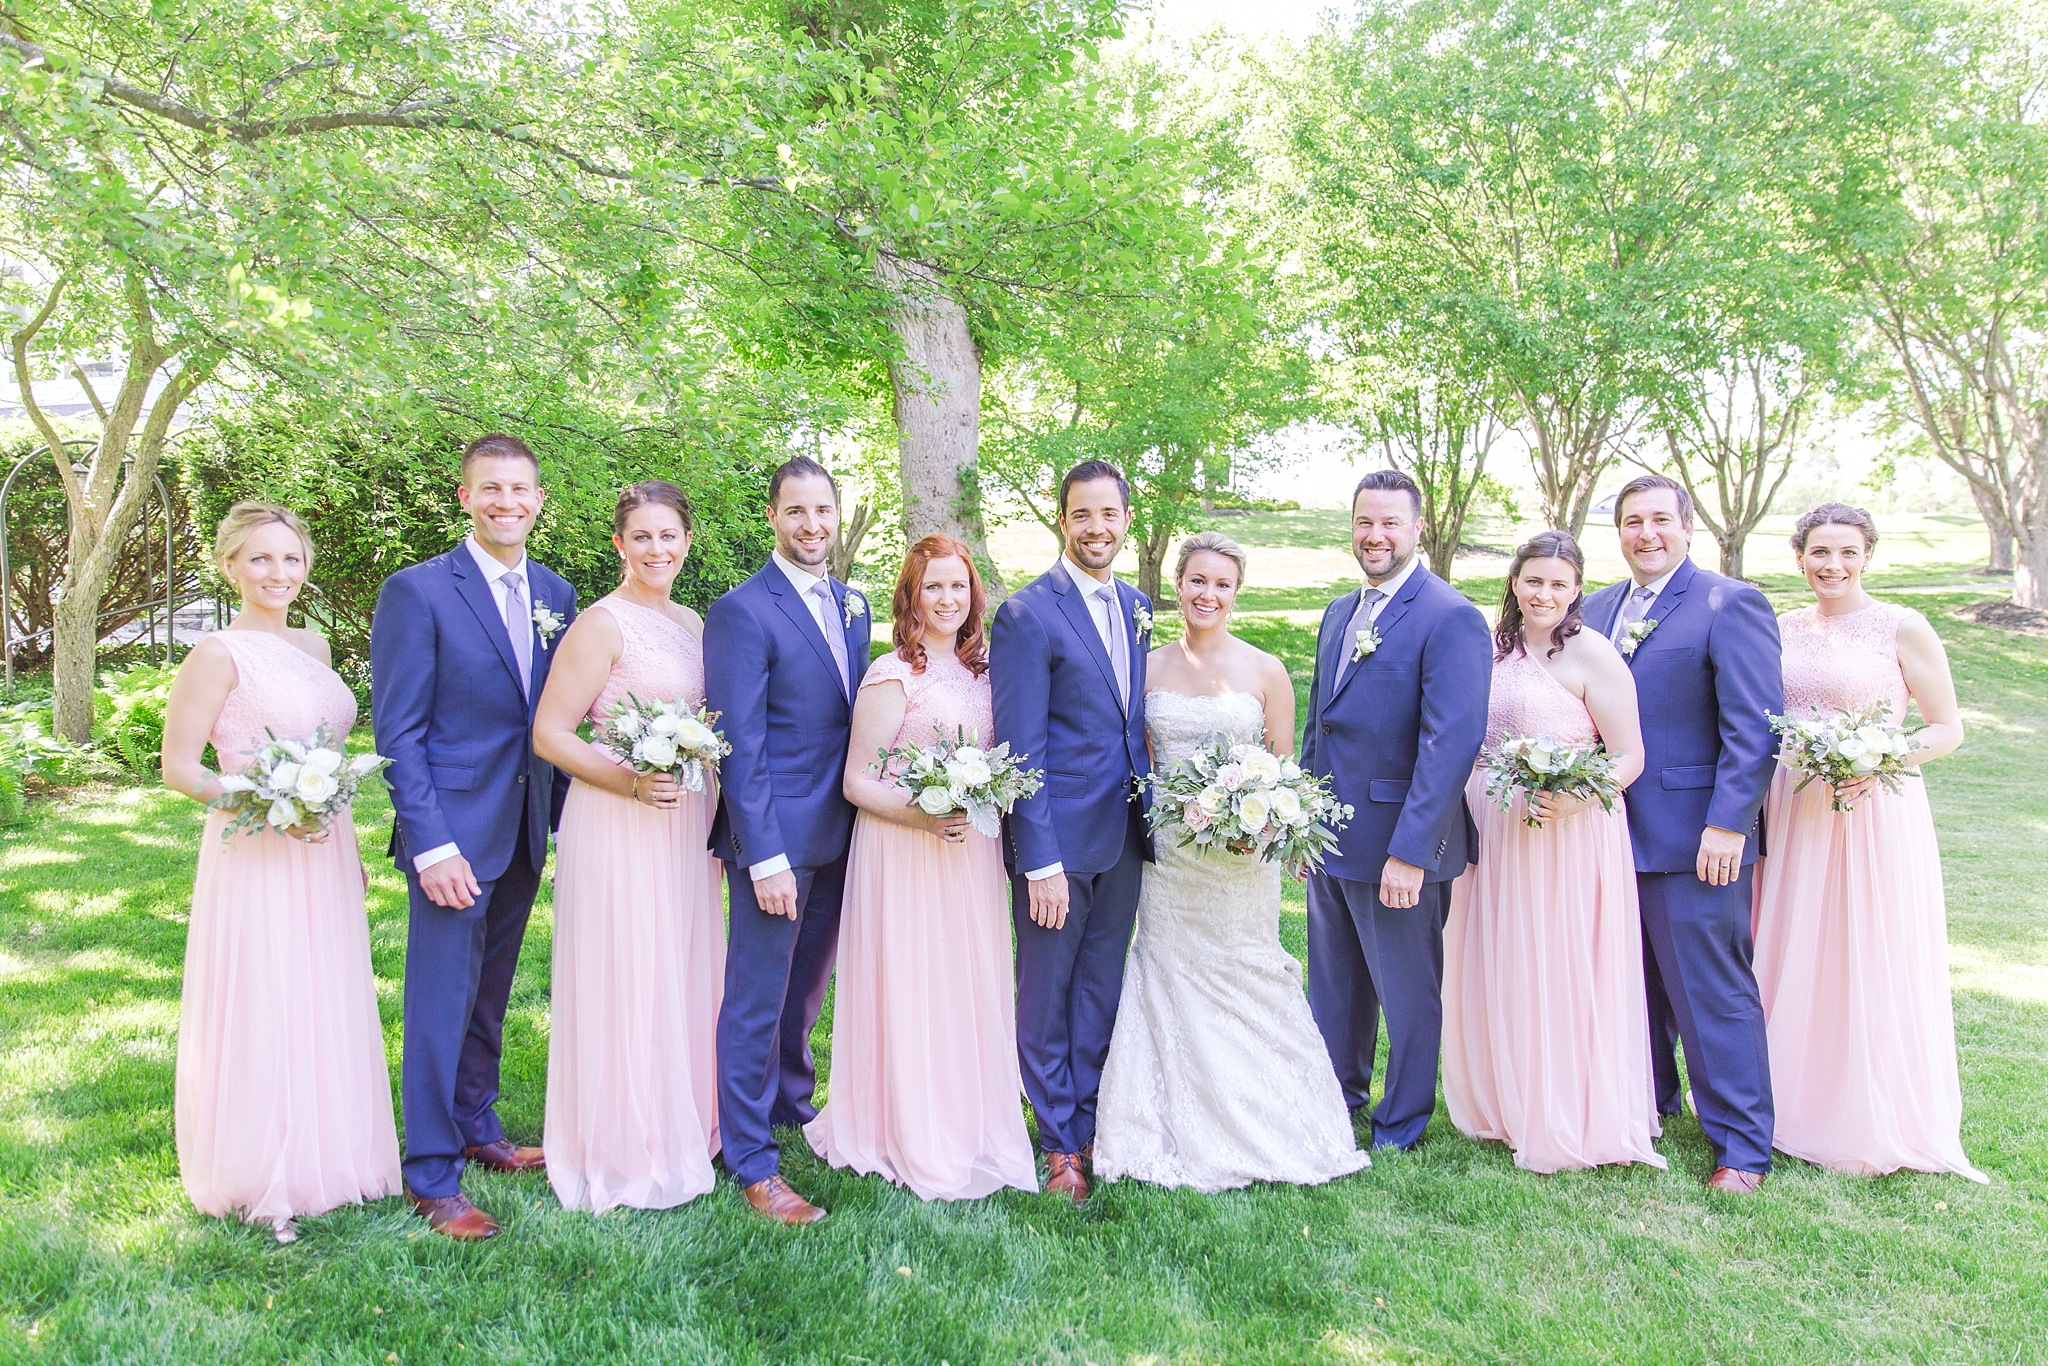 fun-candid-laid-back-wedding-photos-at-wellers-carriage-house-in-saline-michigan-and-at-the-eagle-crest-golf-resort-by-courtney-carolyn-photography_0035.jpg